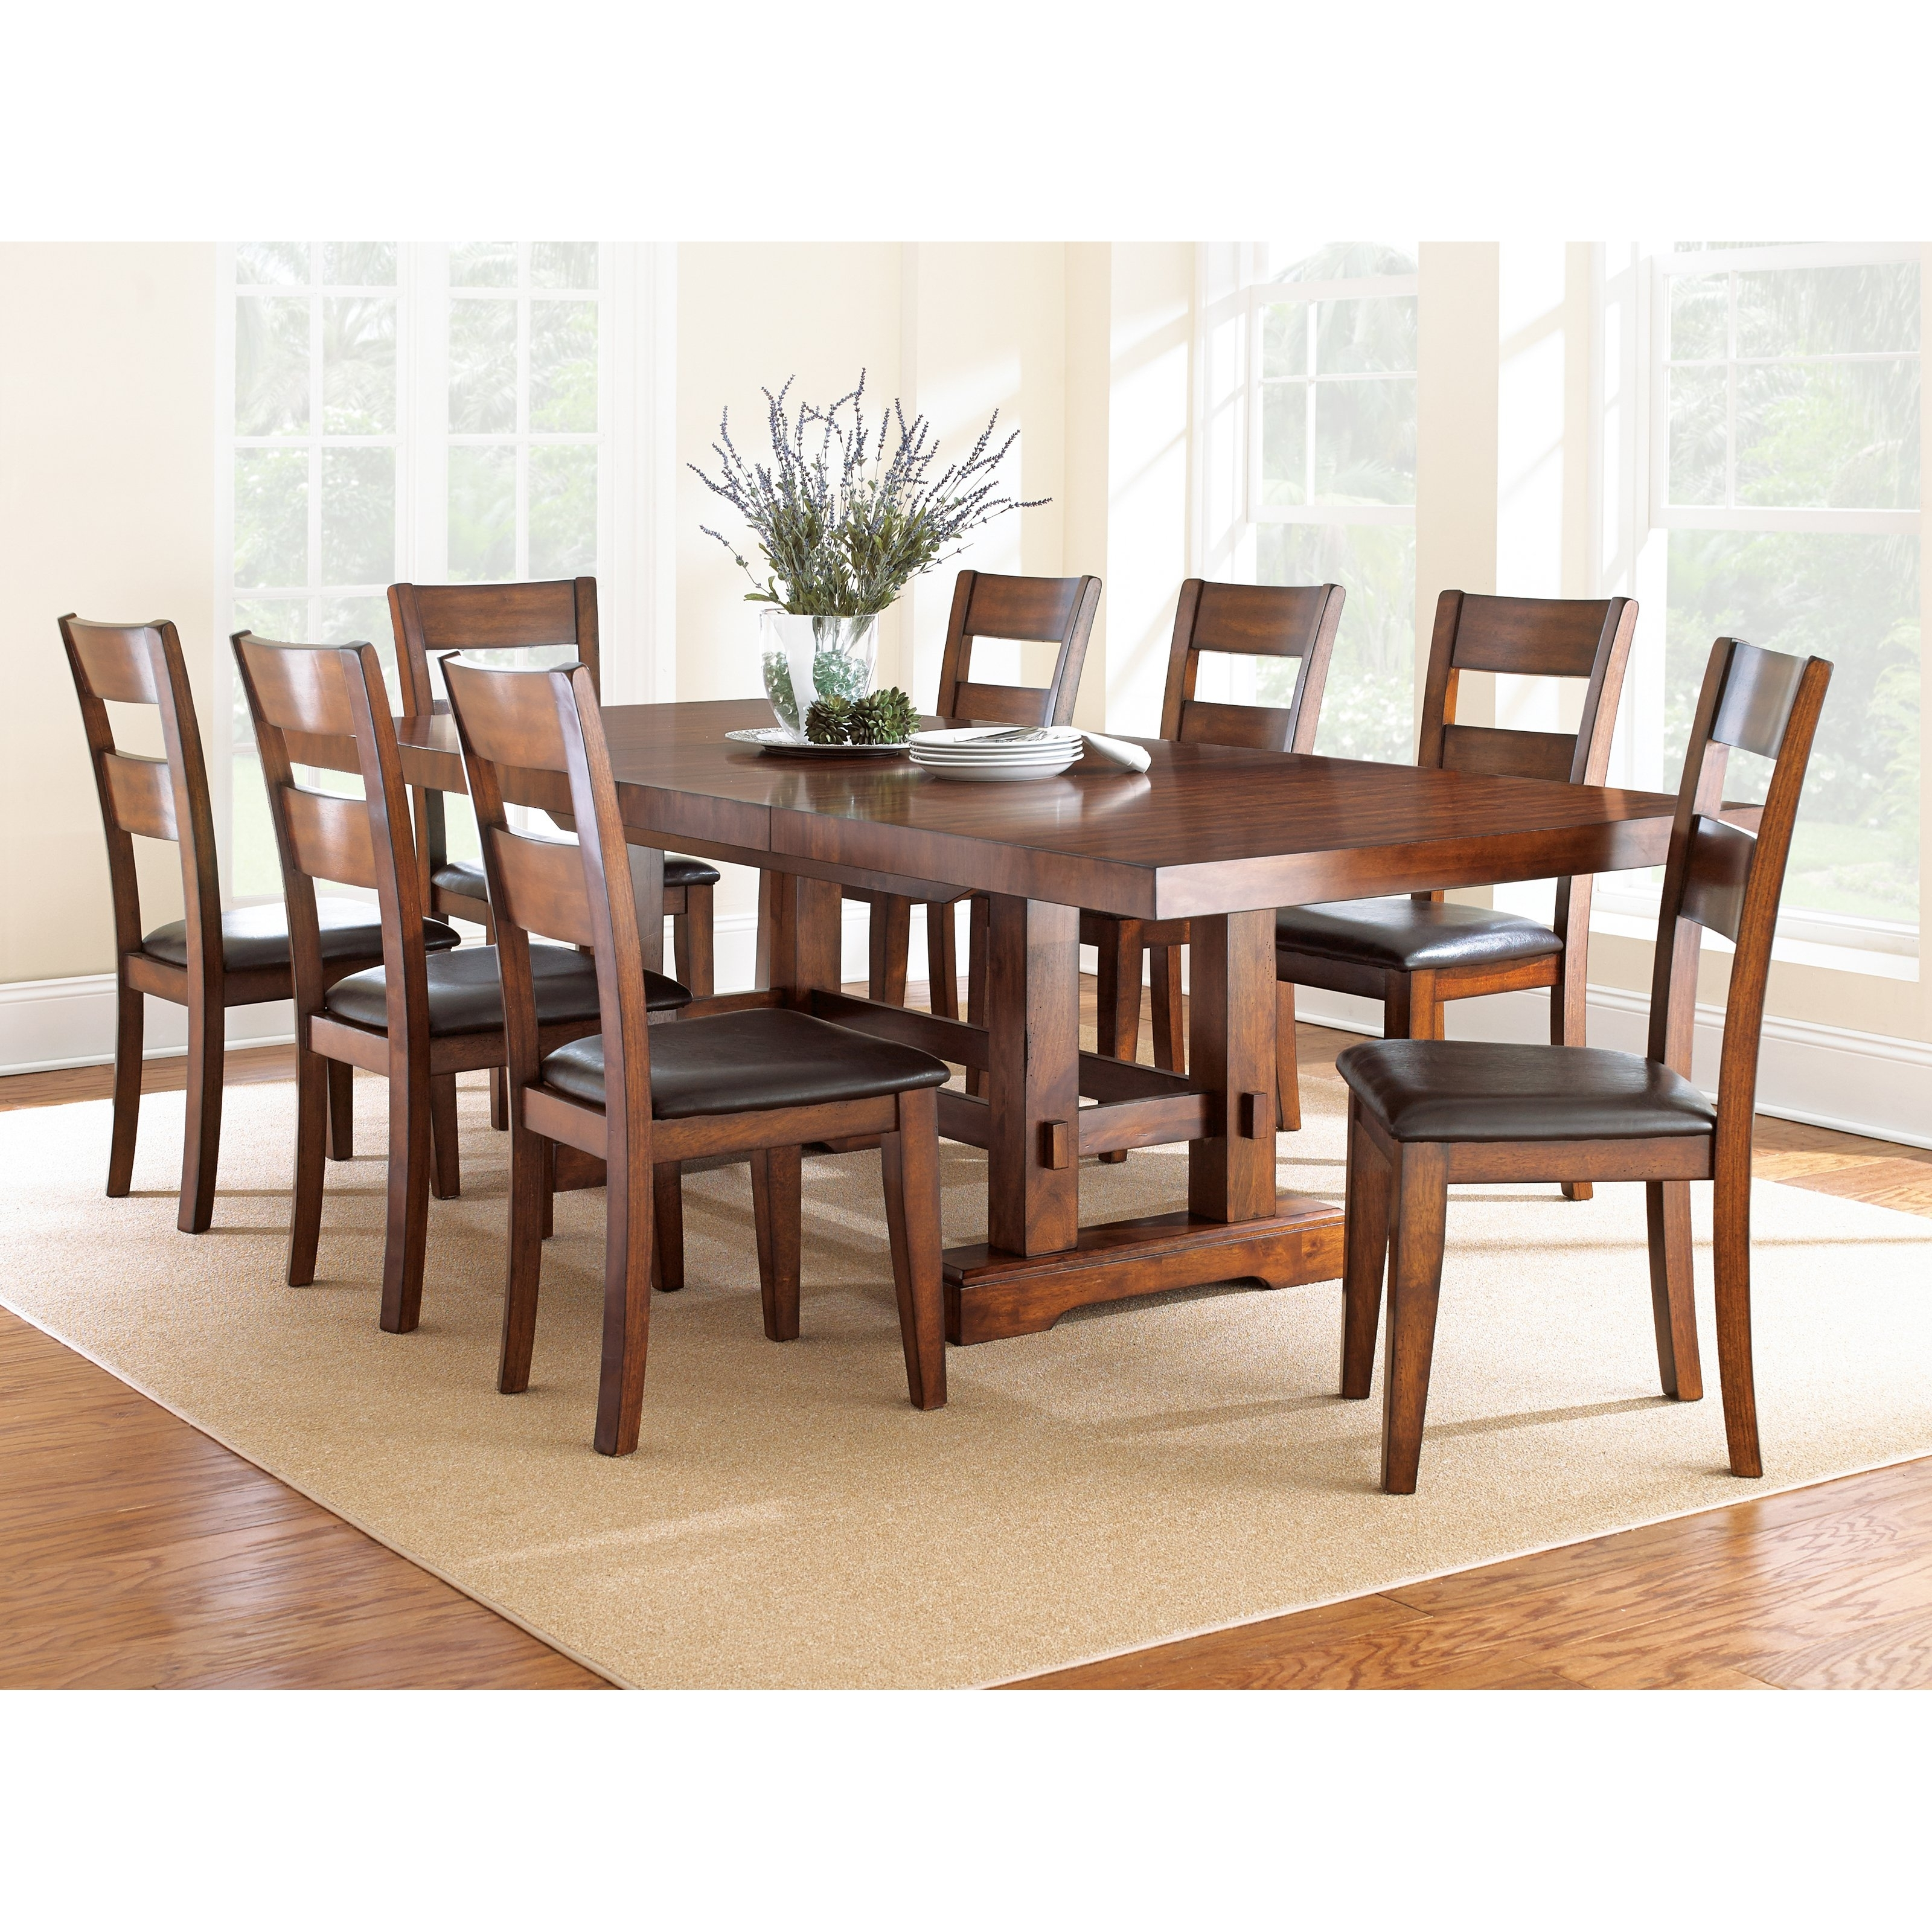 Steve Silver Zappa 9 Piece Dining Table Set Medium Matching Bar In Famous Dining Tables And 8 Chairs (View 17 of 25)